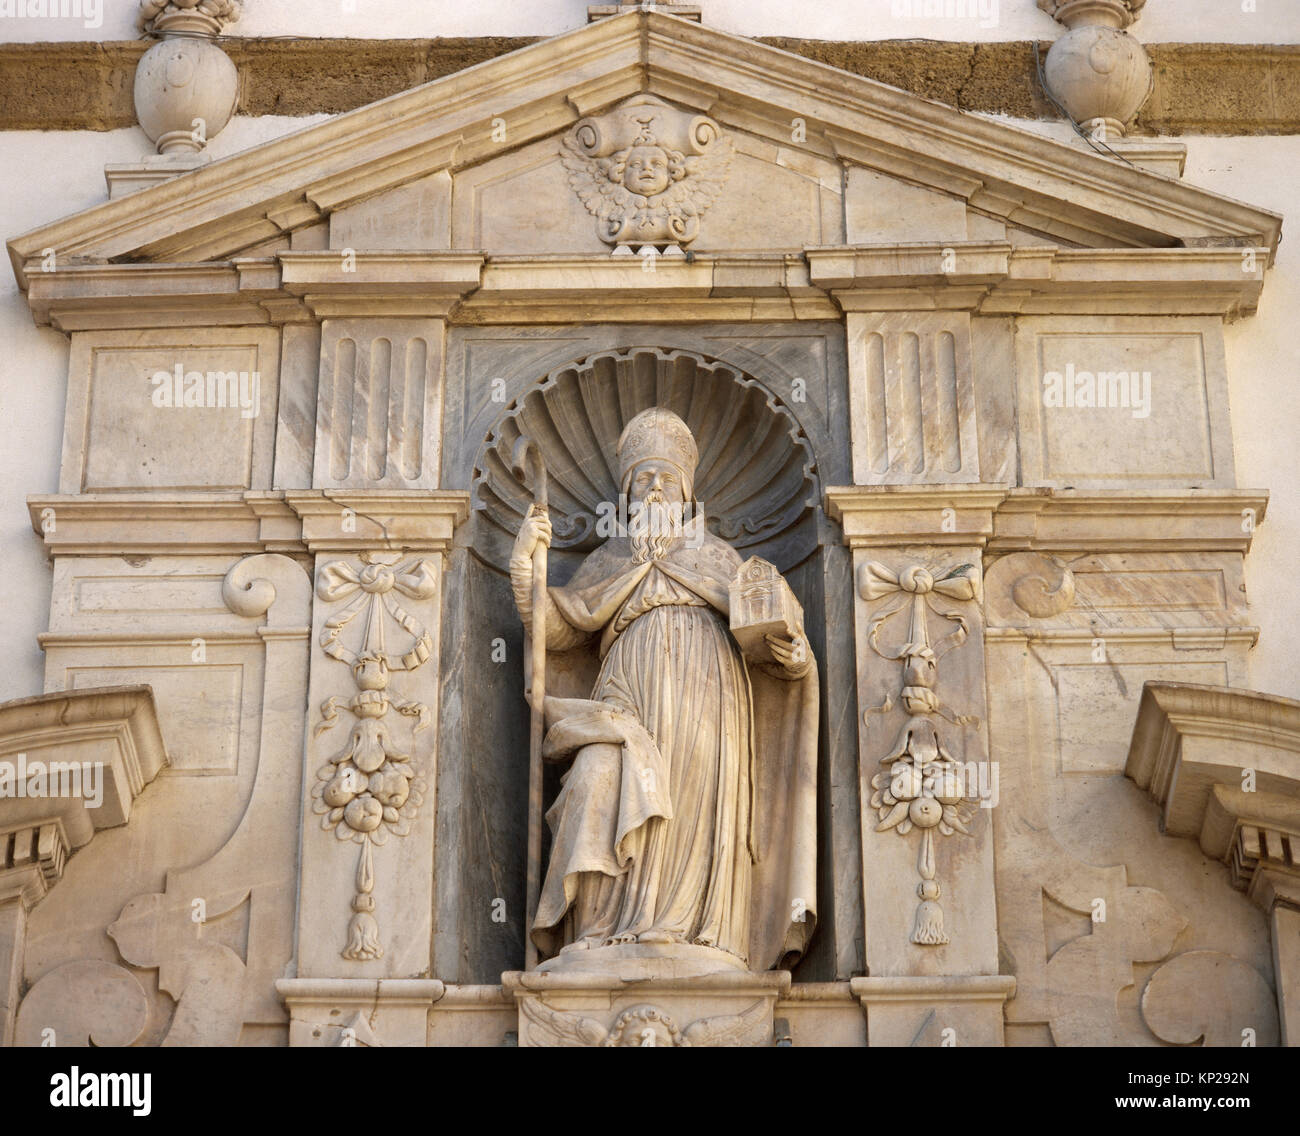 Sculpture of st. Augustine (354-430). Doctor of the Church. Facade of Church of Saint Agustine. Cadiz, Andalusia. - Stock Image